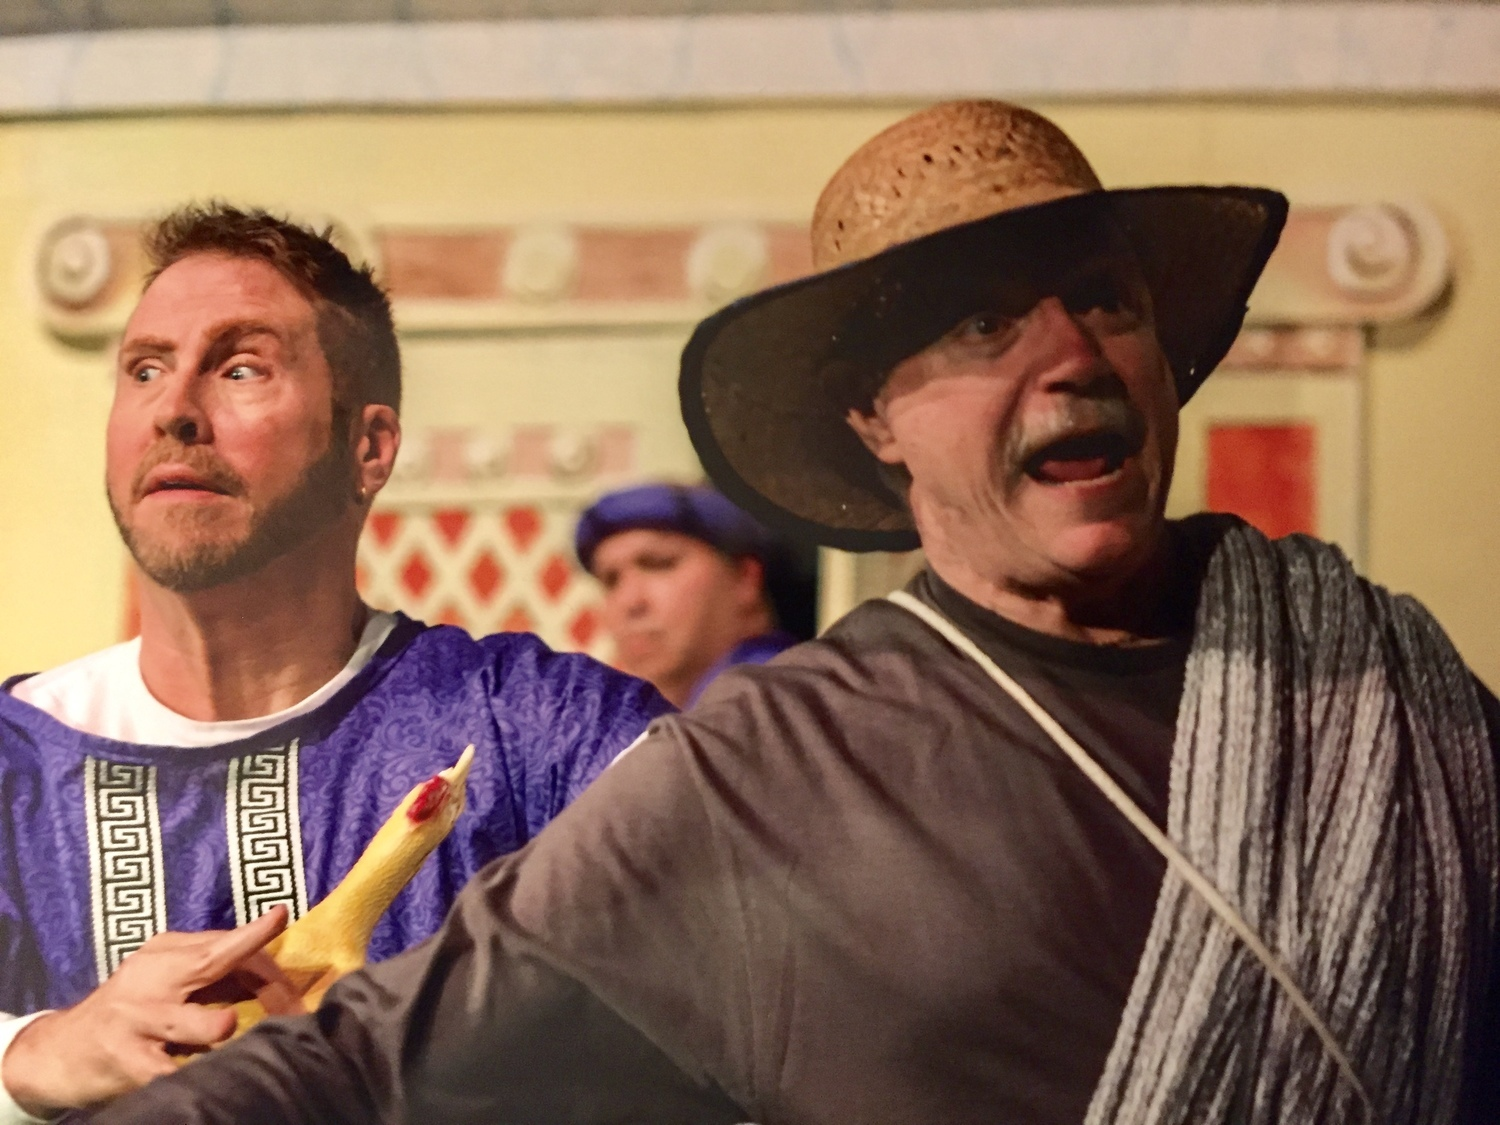 BWW Review: A FUNNY THING HAPPENED ON THE WAY TO THE FORUM at City Theatre Of Independence